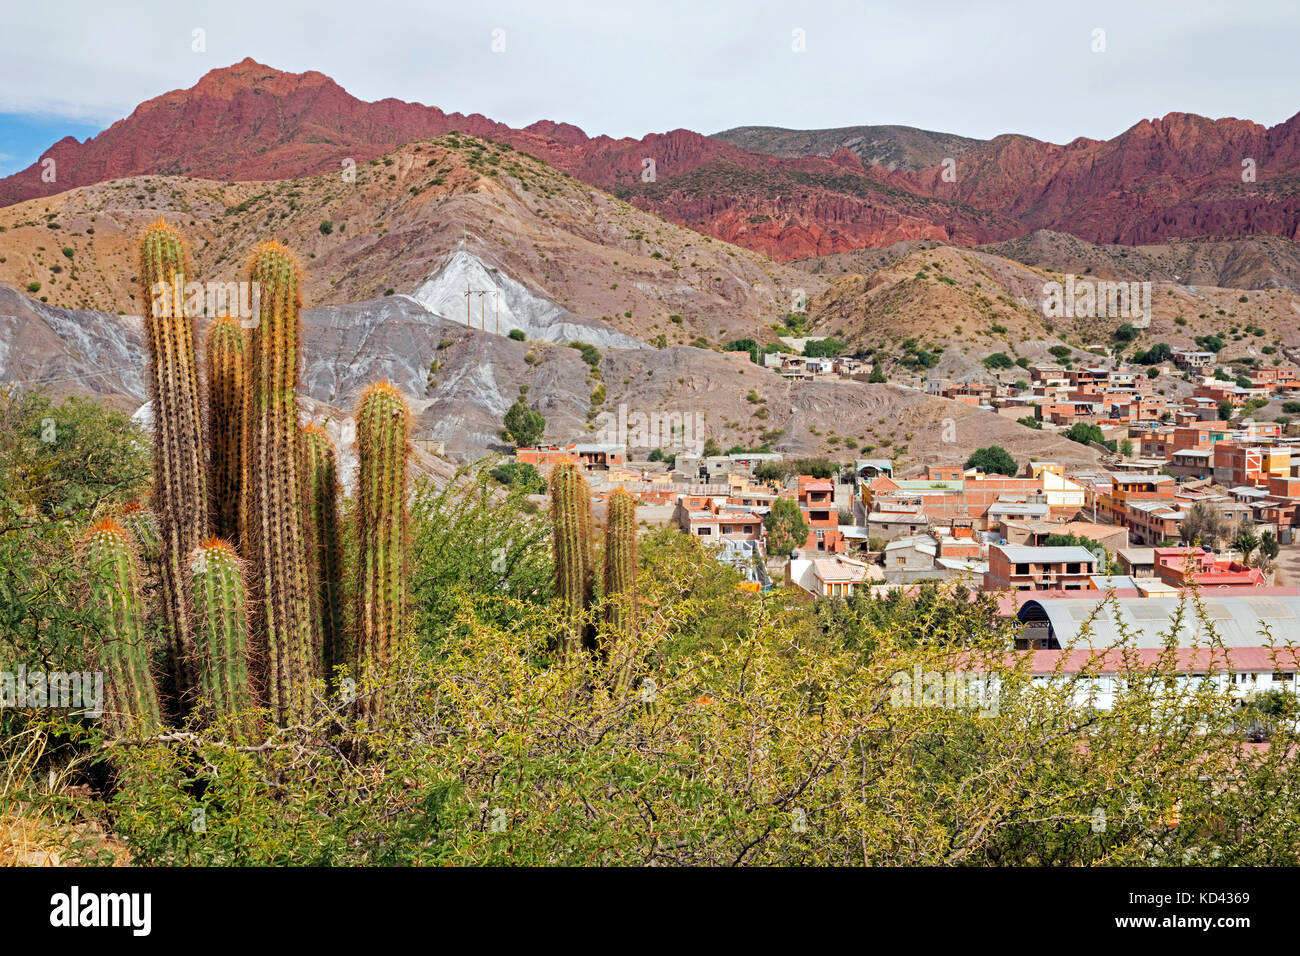 Cacti and aerial view over Tupiza, capital city of the Sud Chichas Province within the Potosí Department, Bolivia - Stock Image